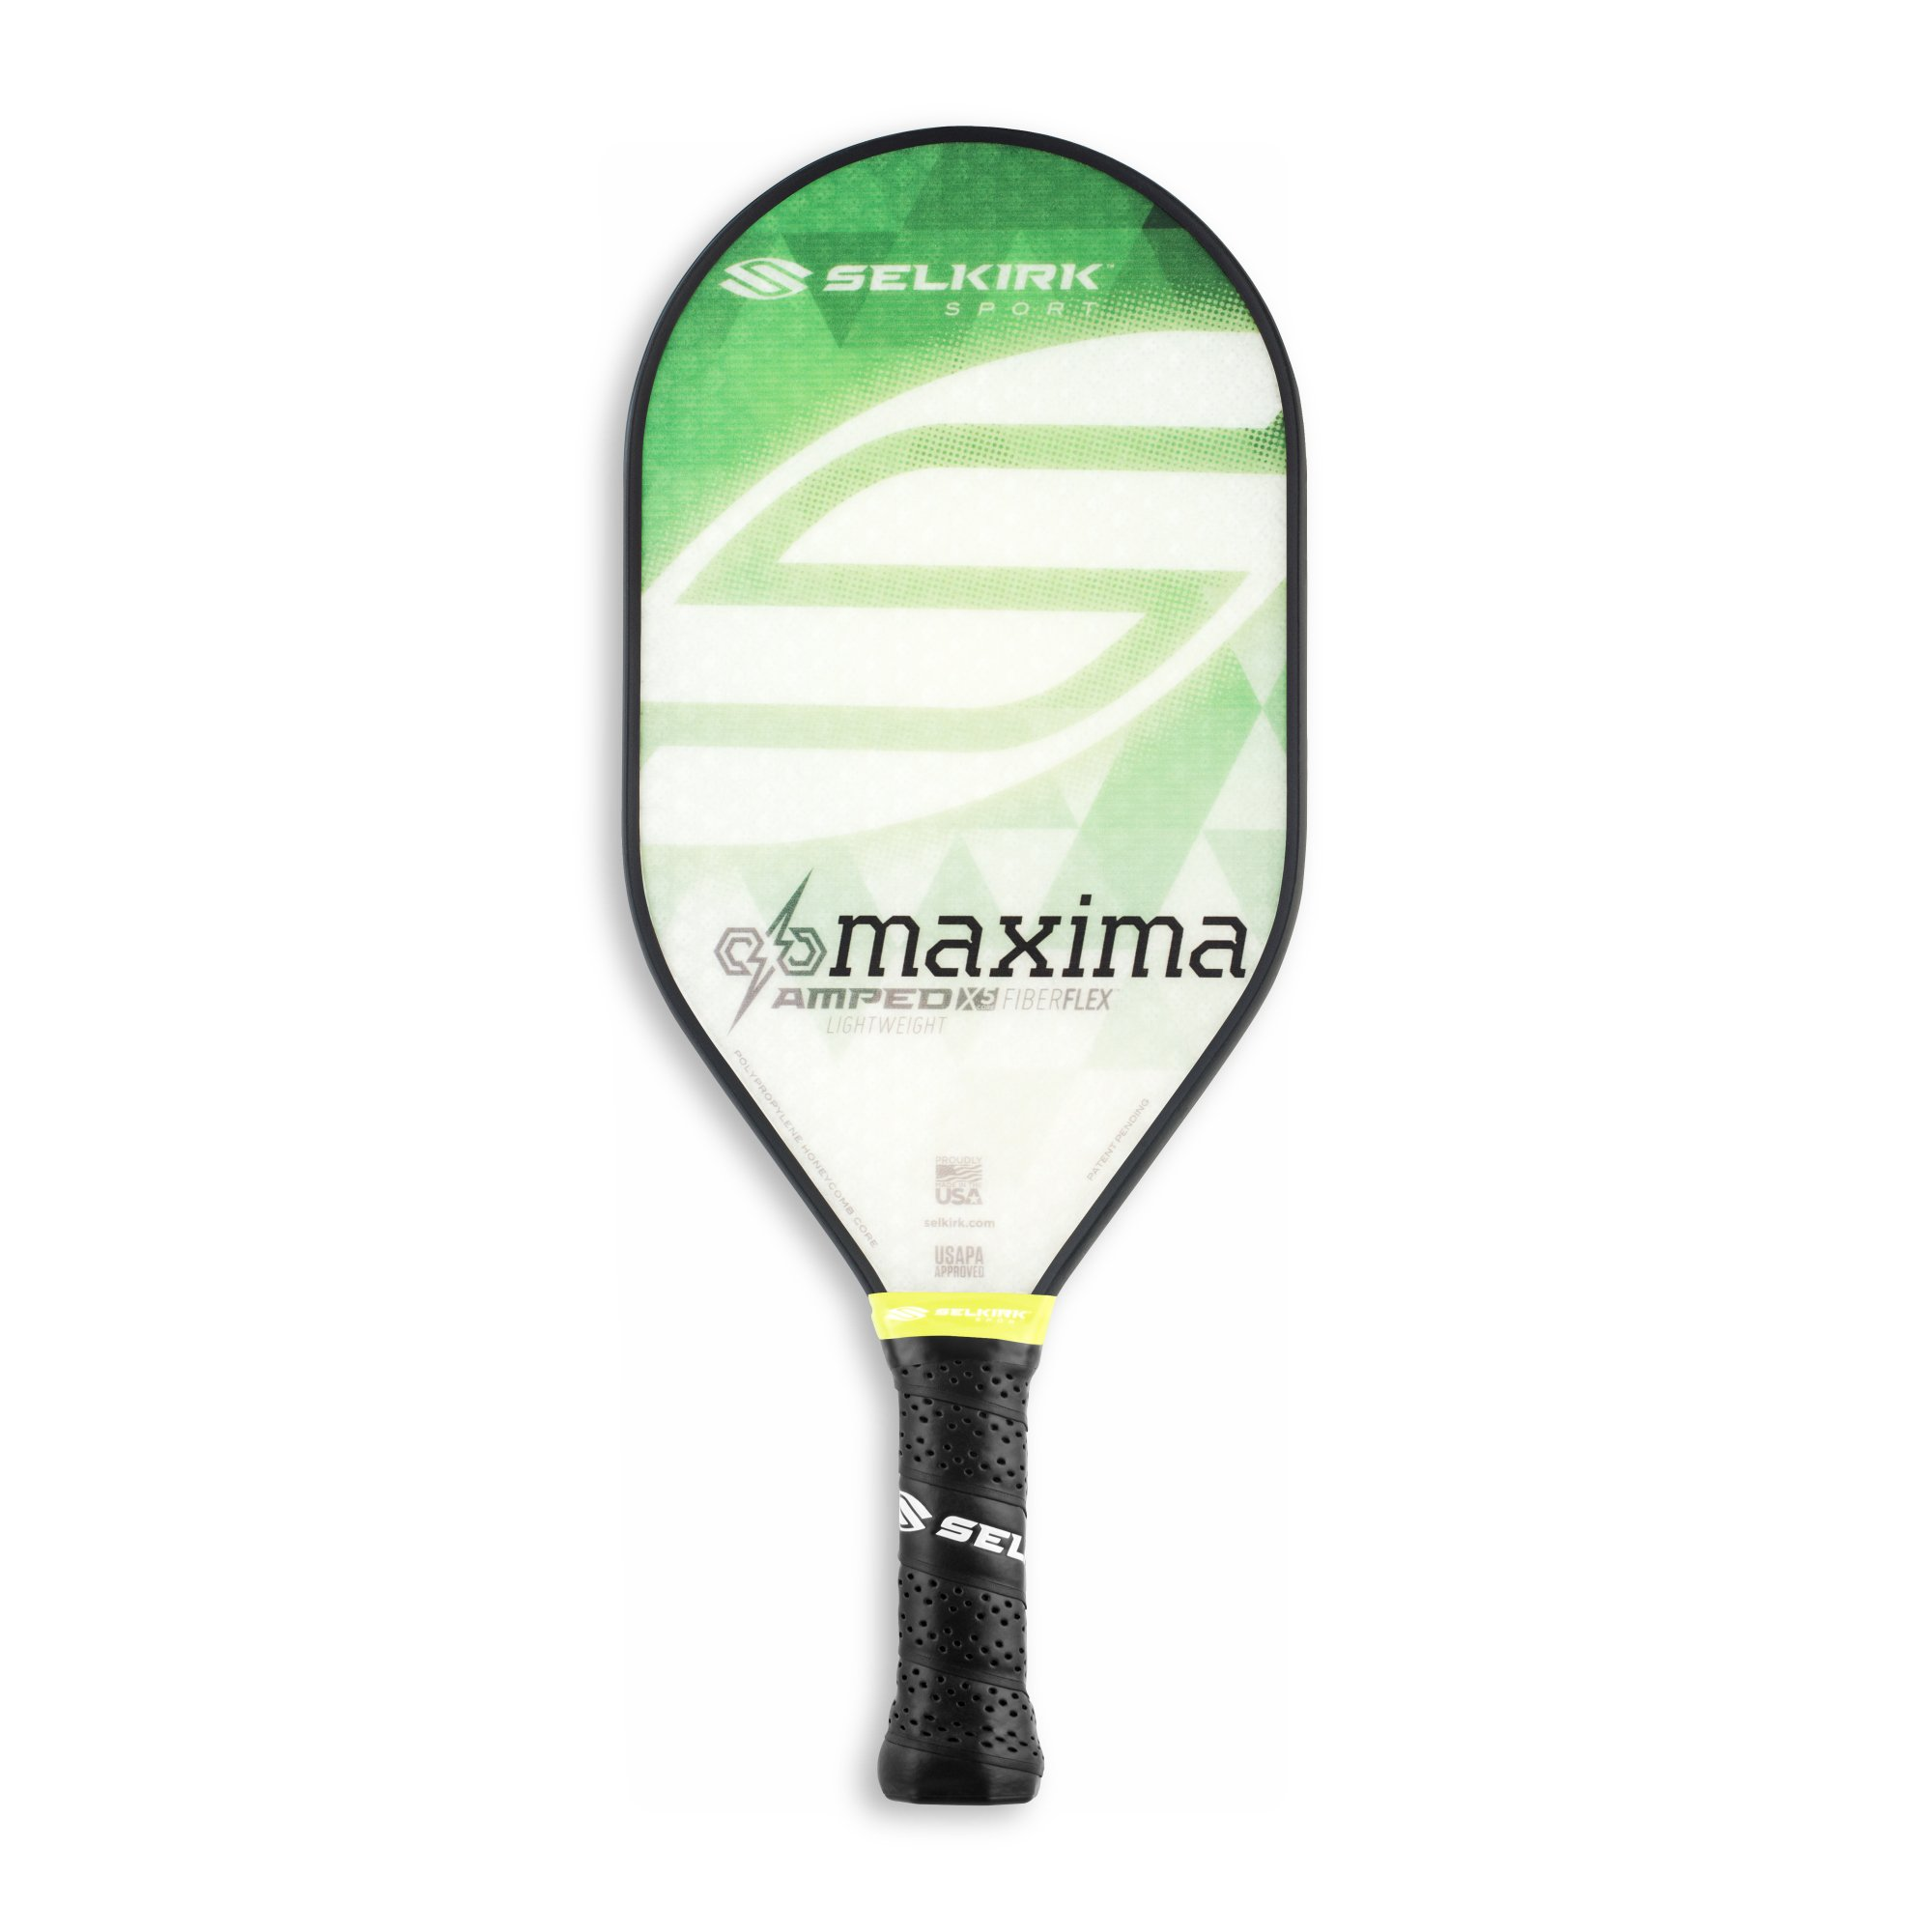 Selkirk Amped Pickleball Paddle - USAPA Approved - X5 Polypropylene Core - FiberFlex Fiberglass Face - 5 Sizes: Epic, S2, Omni, Maxima, and INVIKTA (Maxima Lightweight - Emerald Green) by Selkirk Sport